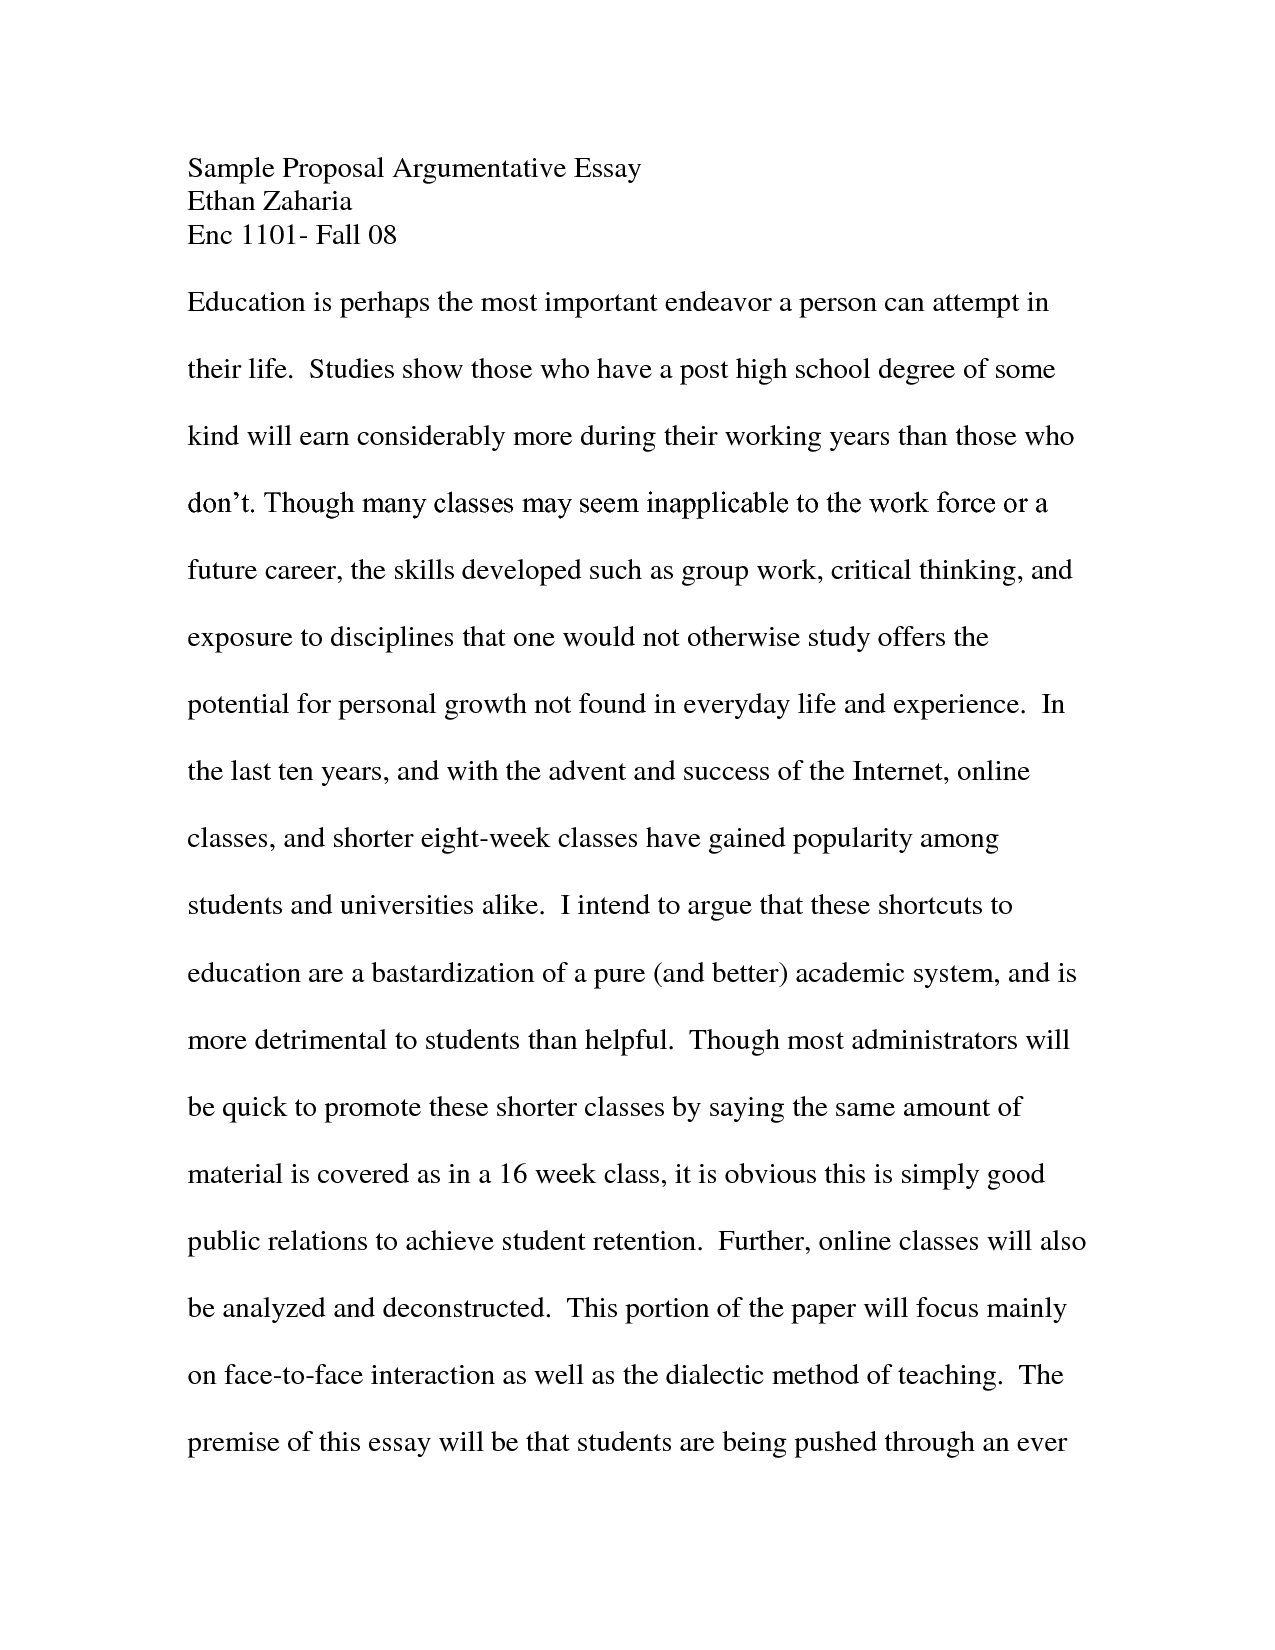 005 Essay Example 3d7hsocgst How To Write An Shocking Proposal For History Mla Full